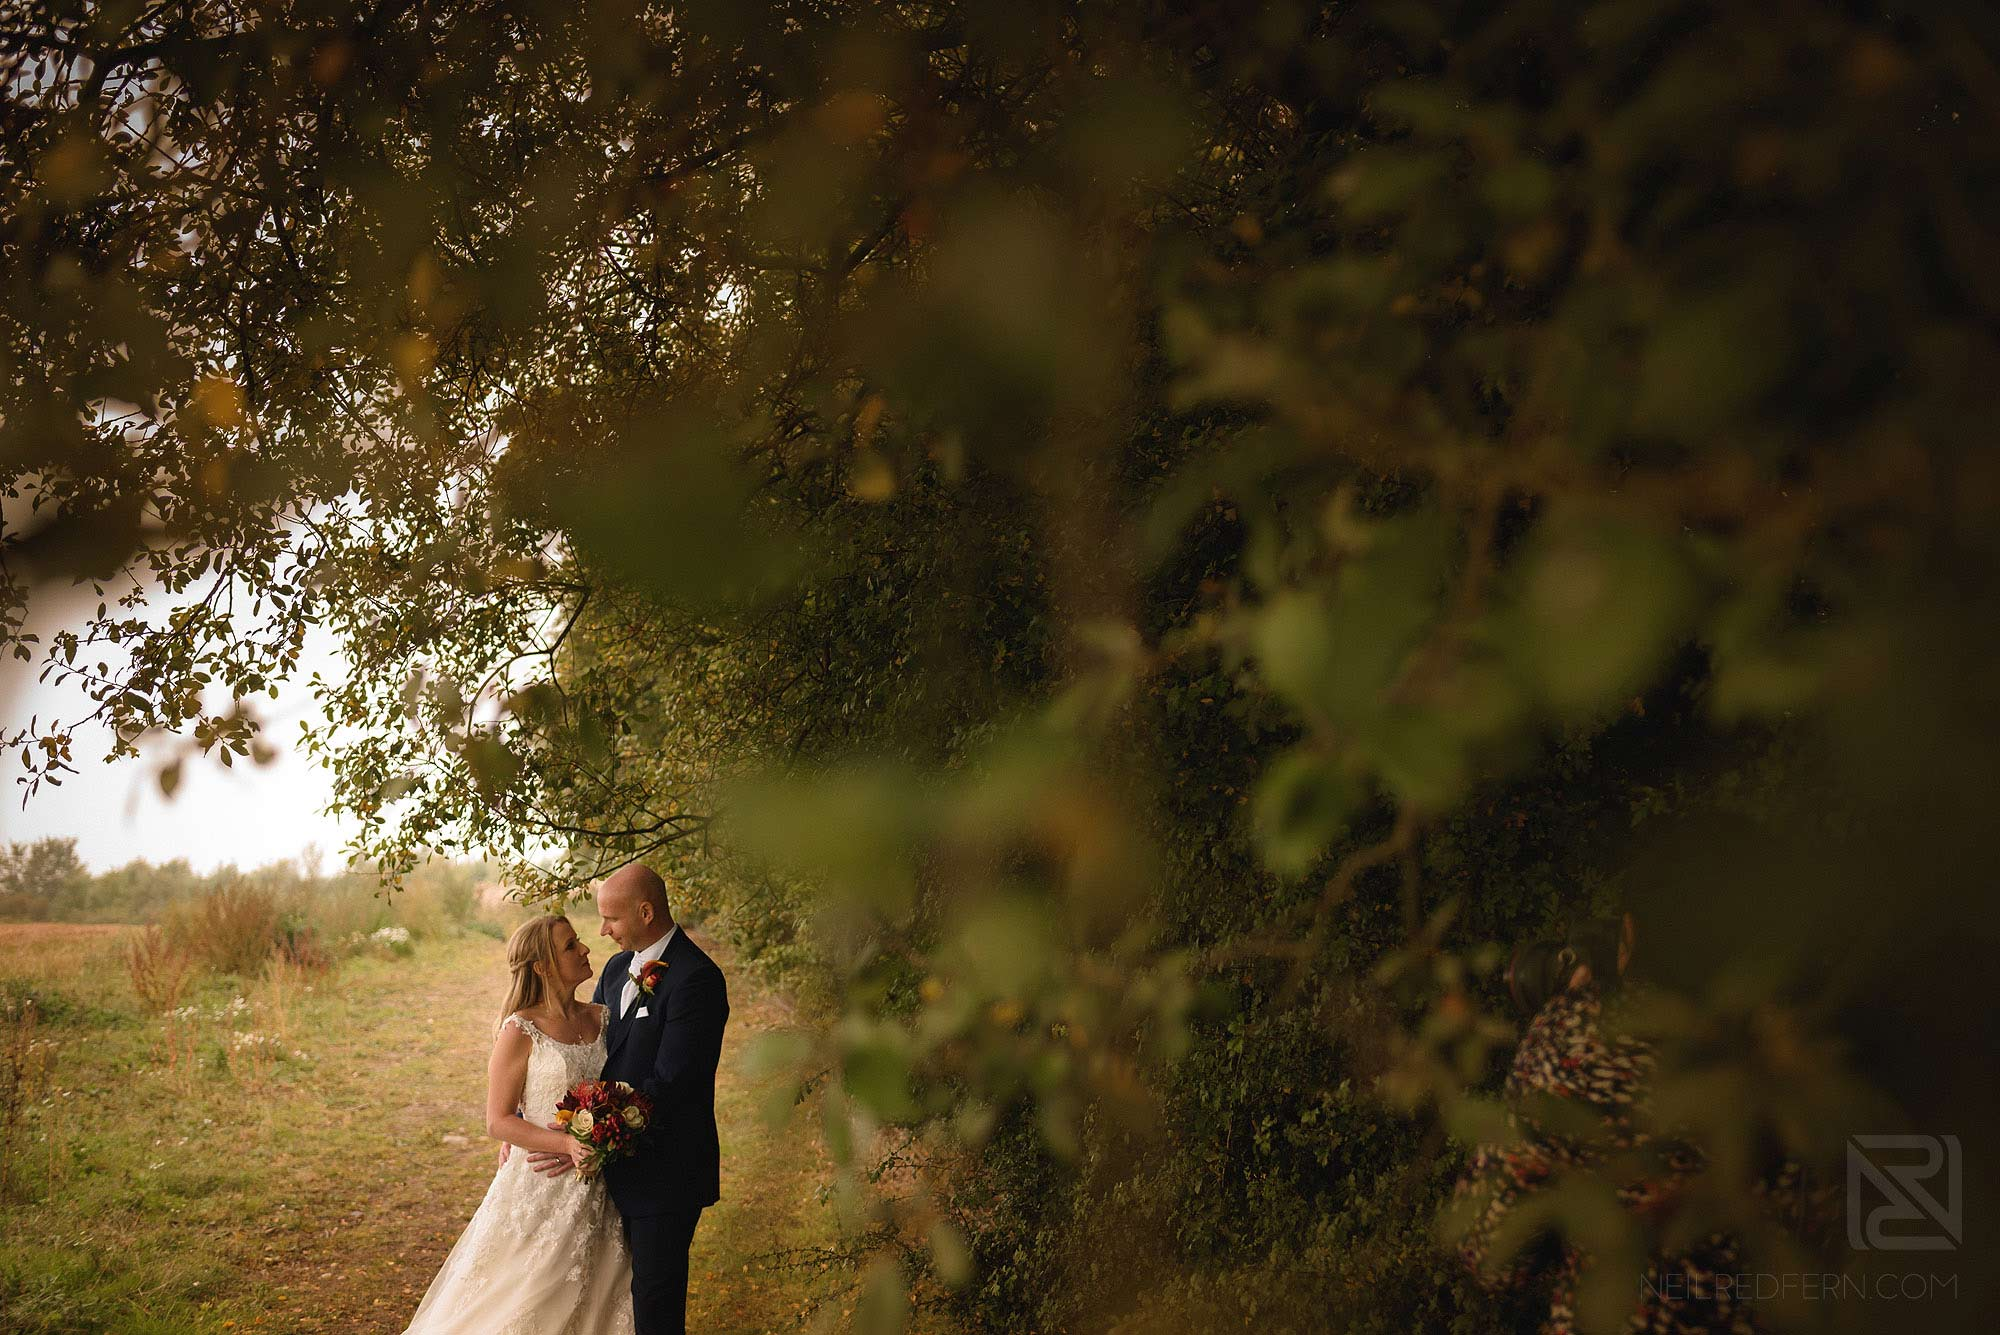 outside photograph of bride and groom at rustic wedding